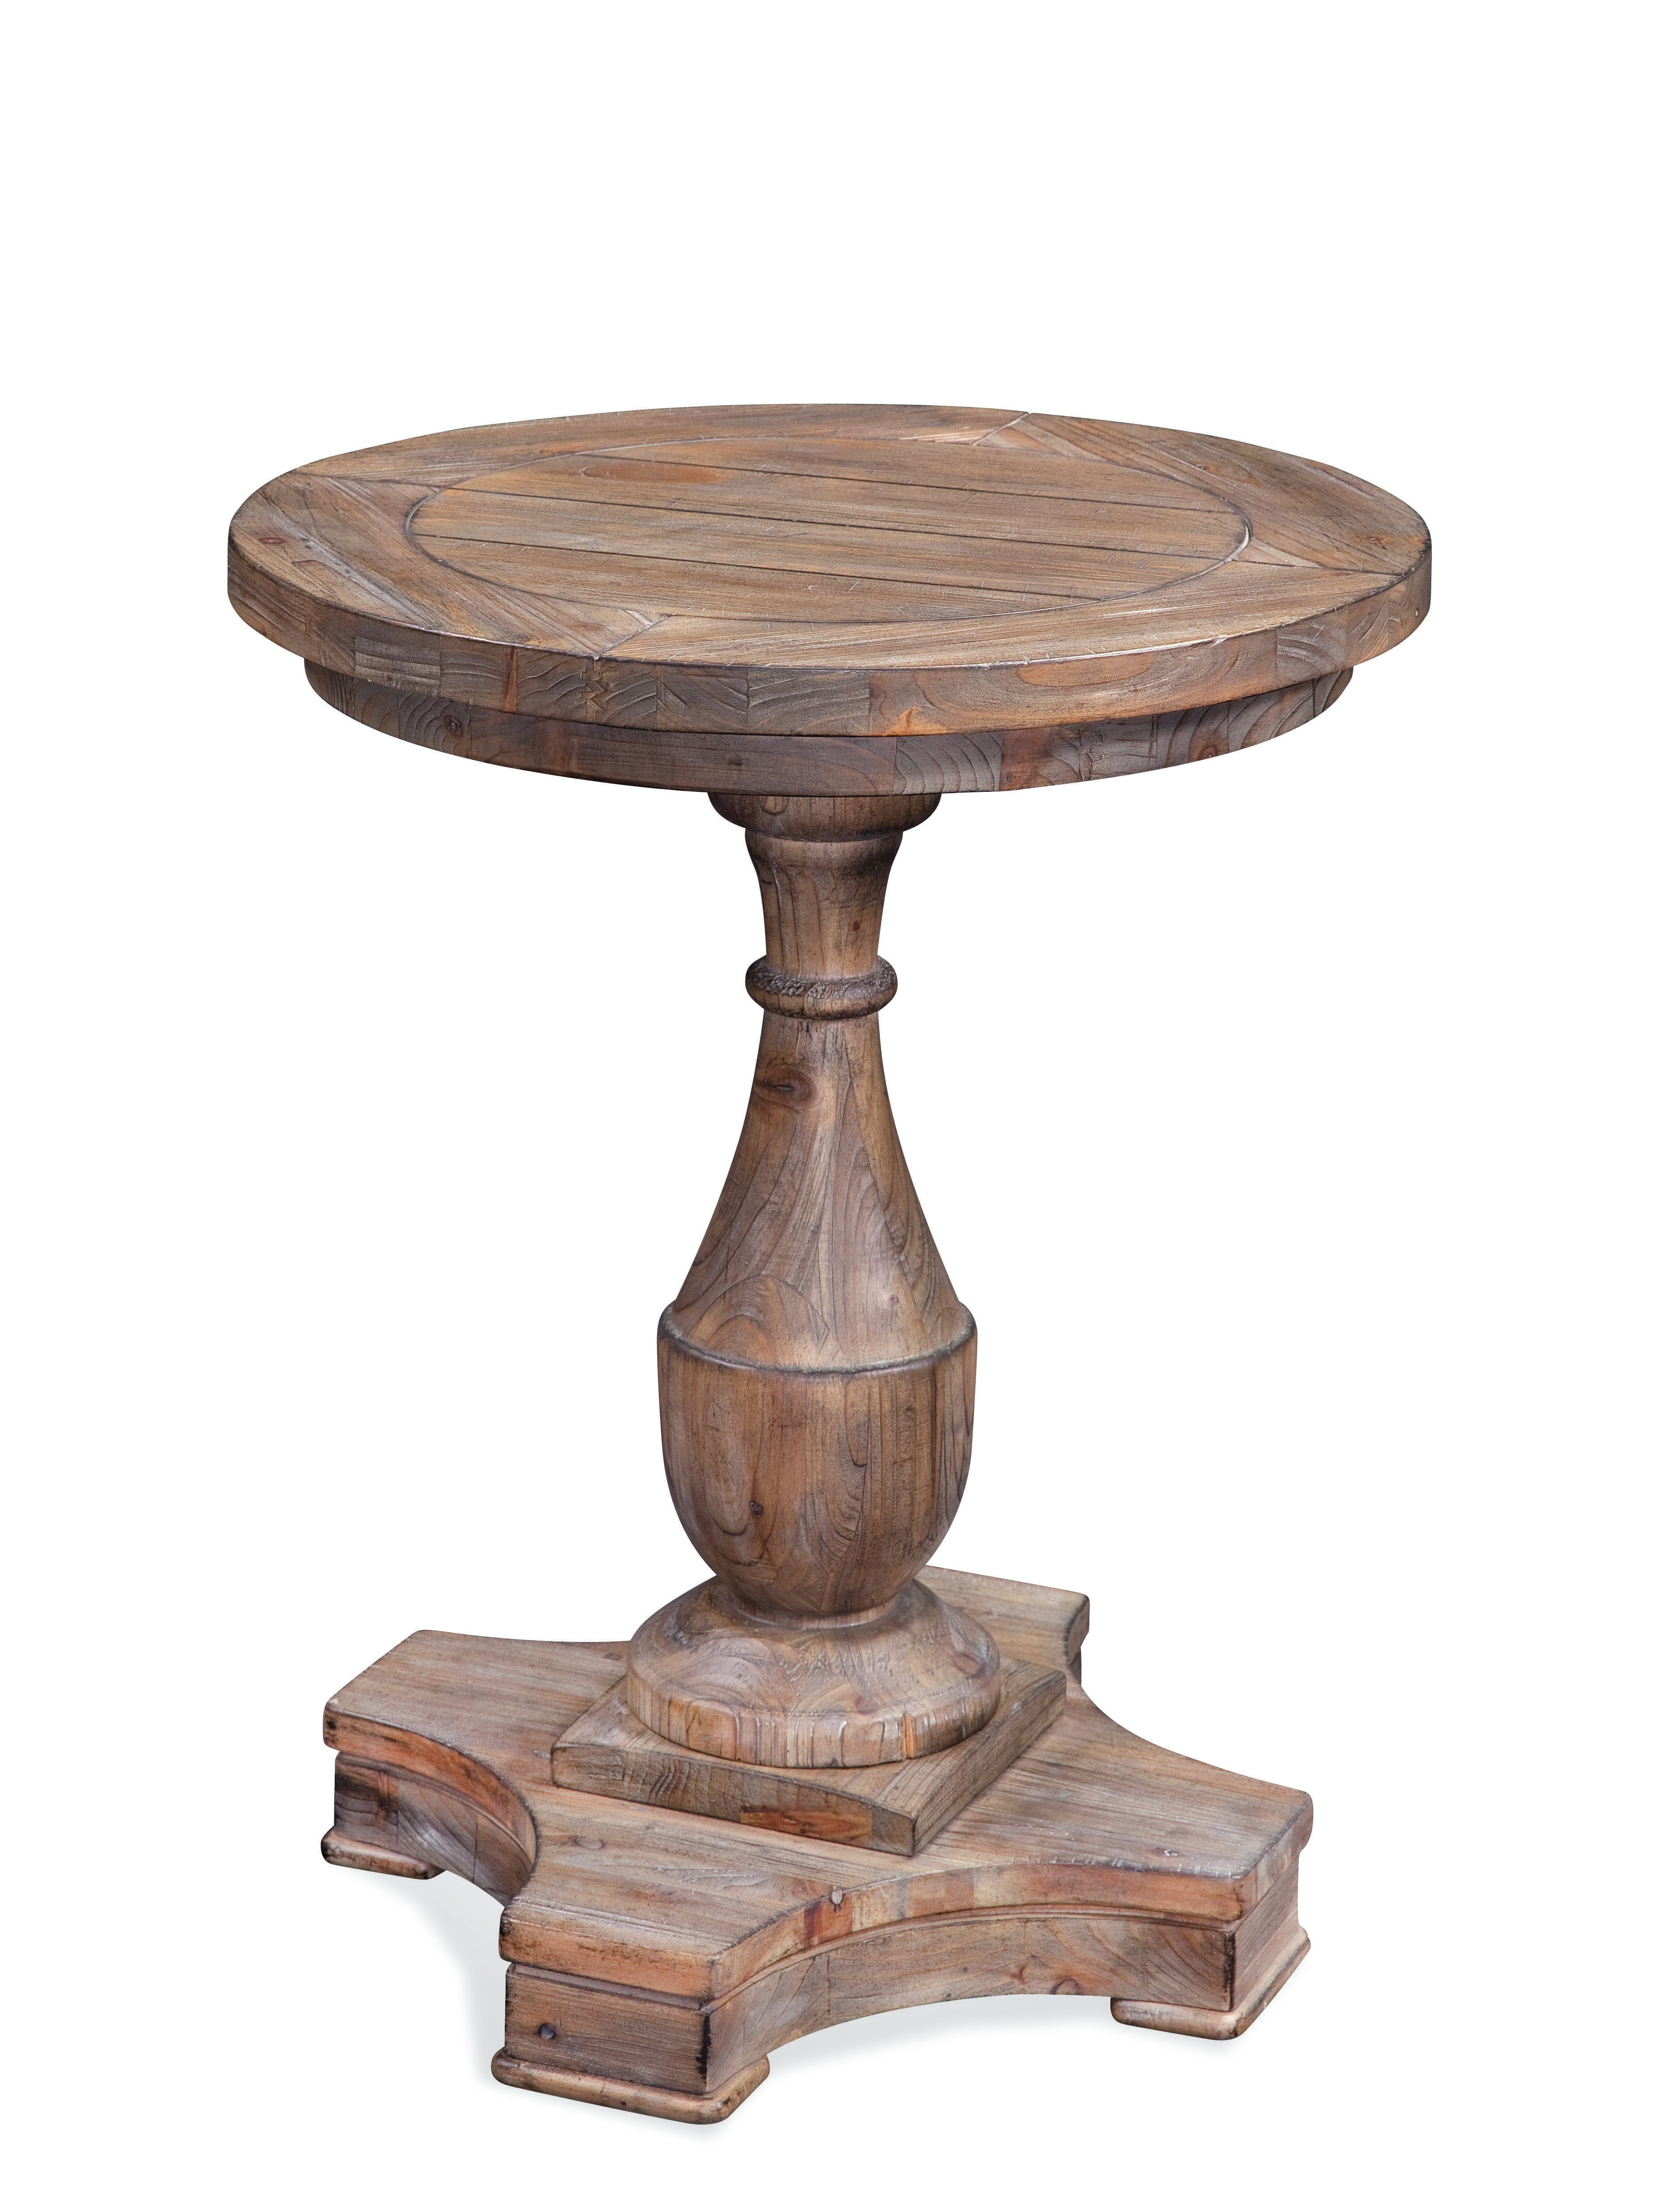 inch round end table etchemin distressed black pedestal accent gold leaf console rugs ashley furniture glass espresso entryway crescent lighting top coffee with brass legs one